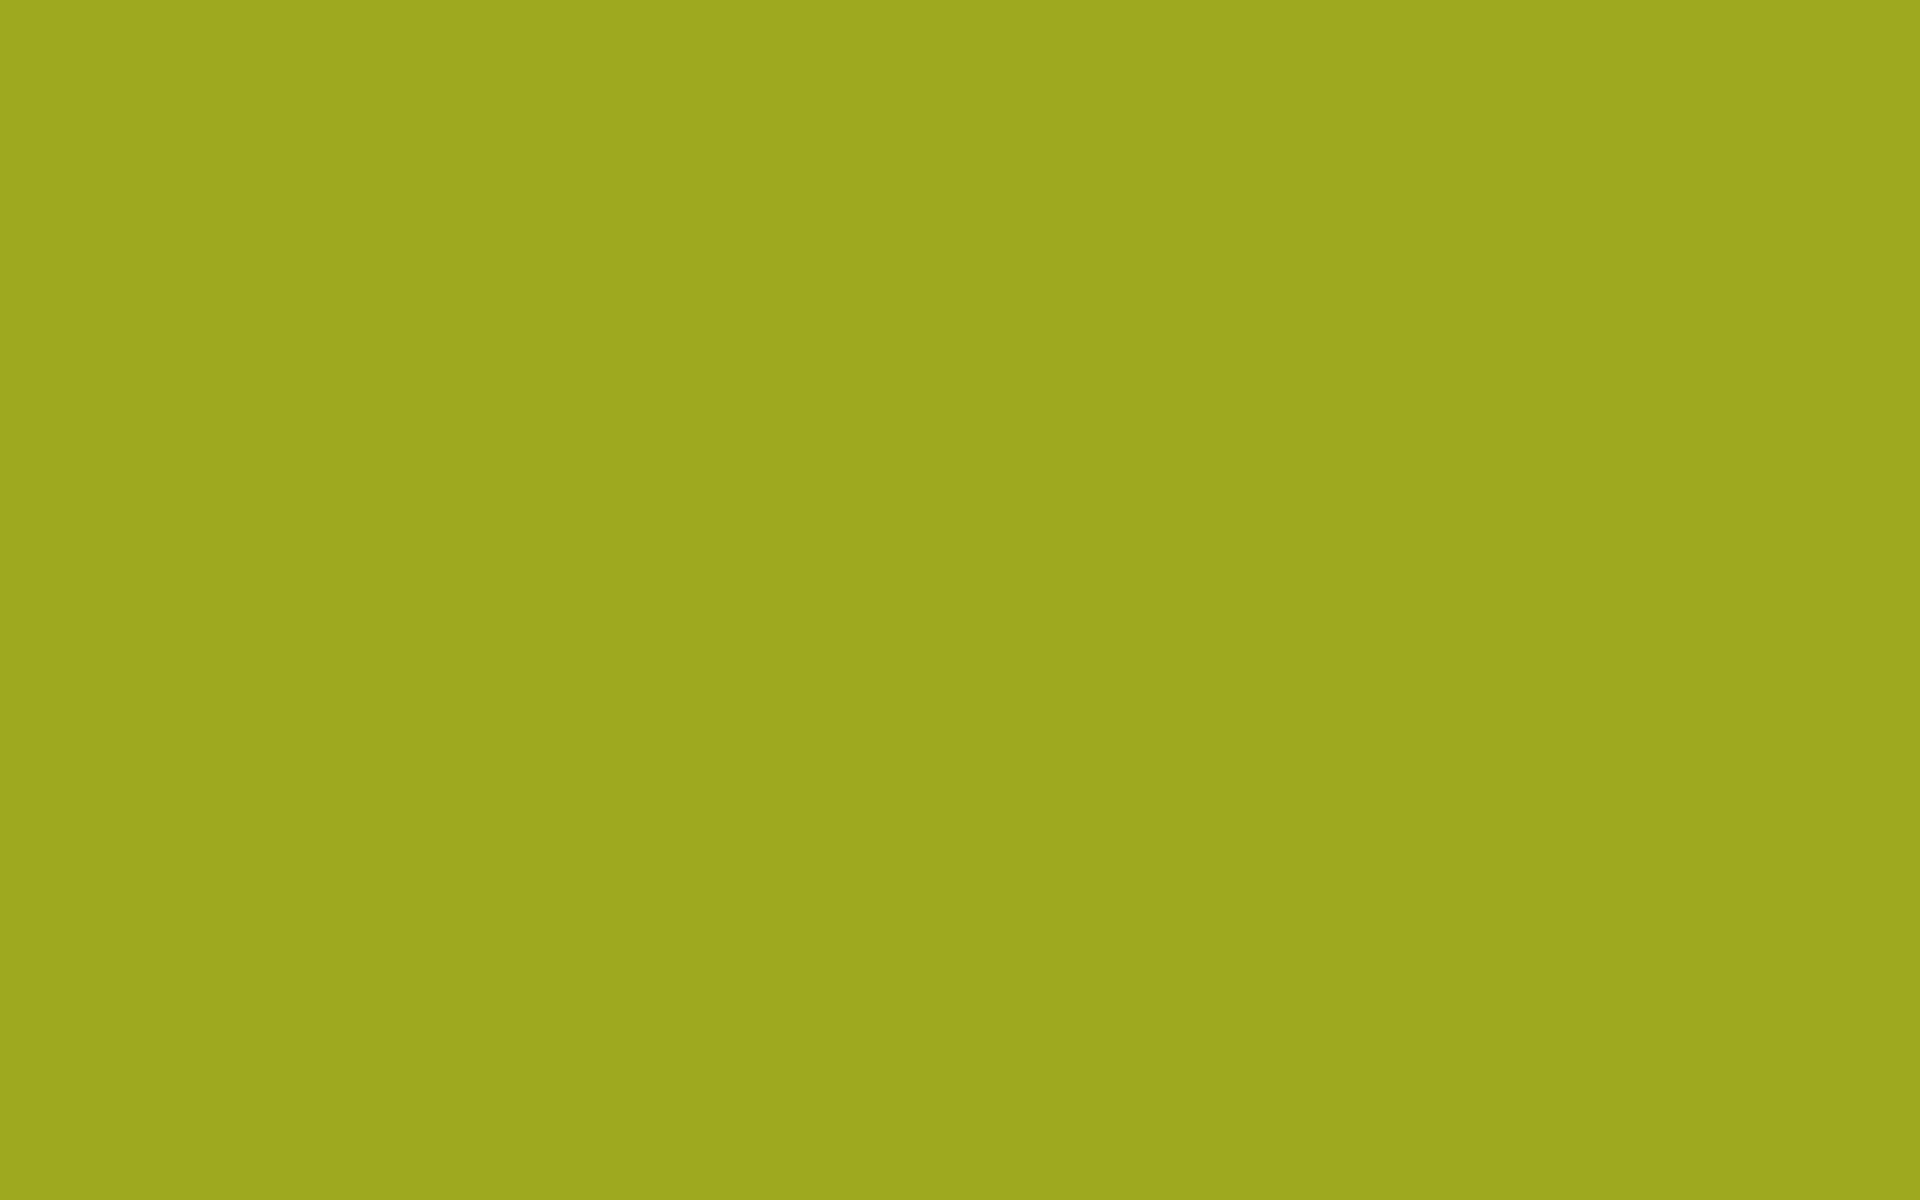 Privacy Policy >> 1920x1200 Citron Solid Color Background